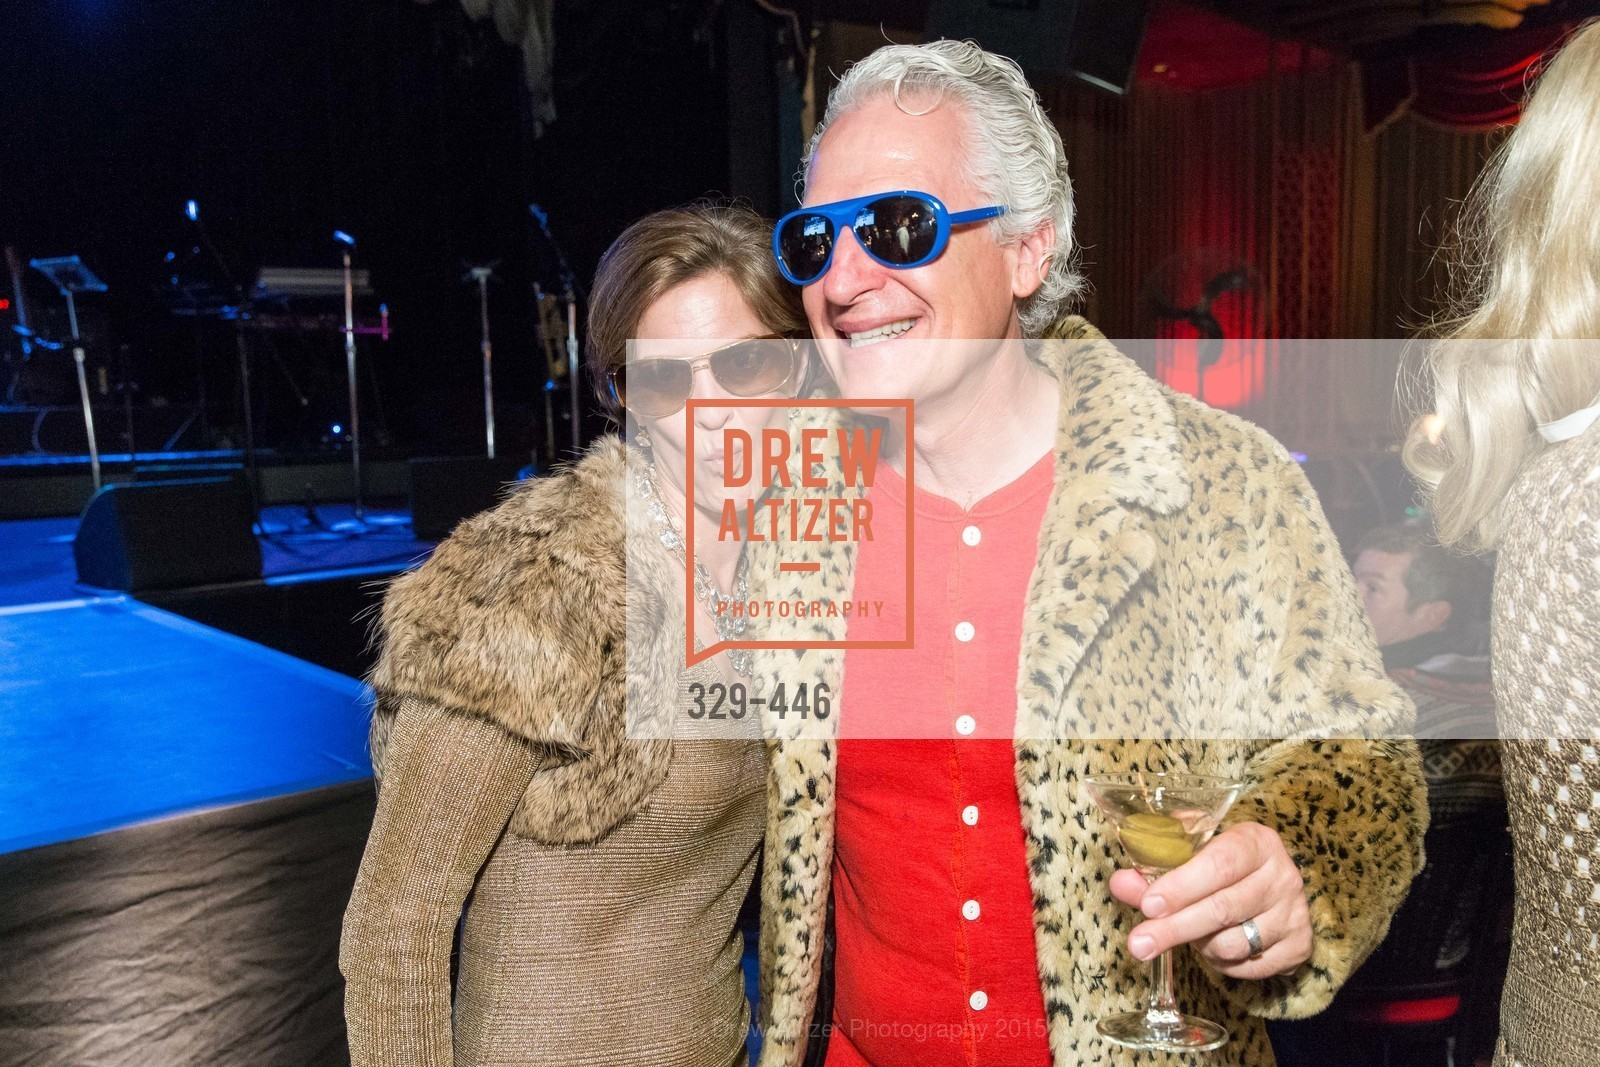 Claire Alt, Philip Raiser, U.S. Ski and Snowboard Foundation's Snow Ball, Bimbo's 365 Club. 1025 Columbus Ave, November 7th, 2015,Drew Altizer, Drew Altizer Photography, full-service event agency, private events, San Francisco photographer, photographer California